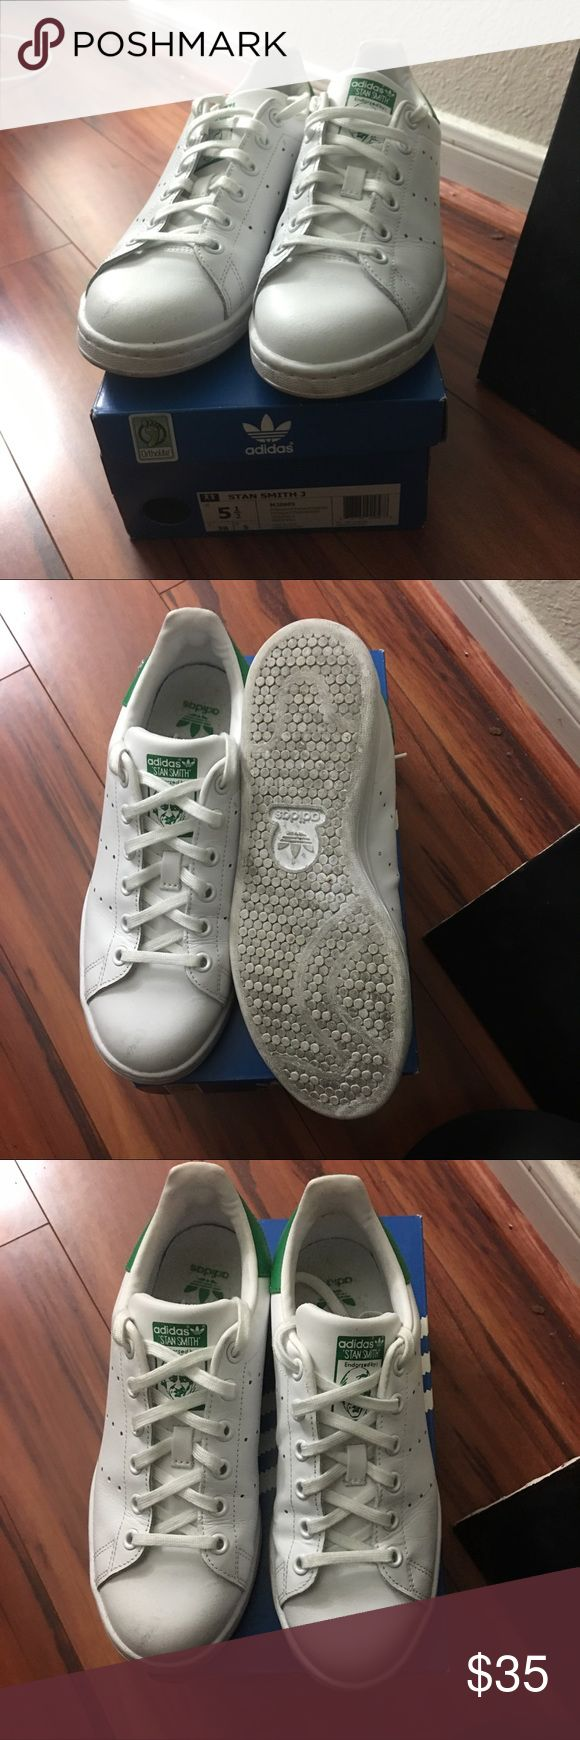 ADIDAS STAN SMITHS barely used Stan smiths, only worn a few times. Kids 5.5 is equivalent to a size 7 in women's! In perfect condition! Taking offers 💘 adidas Shoes Sneakers